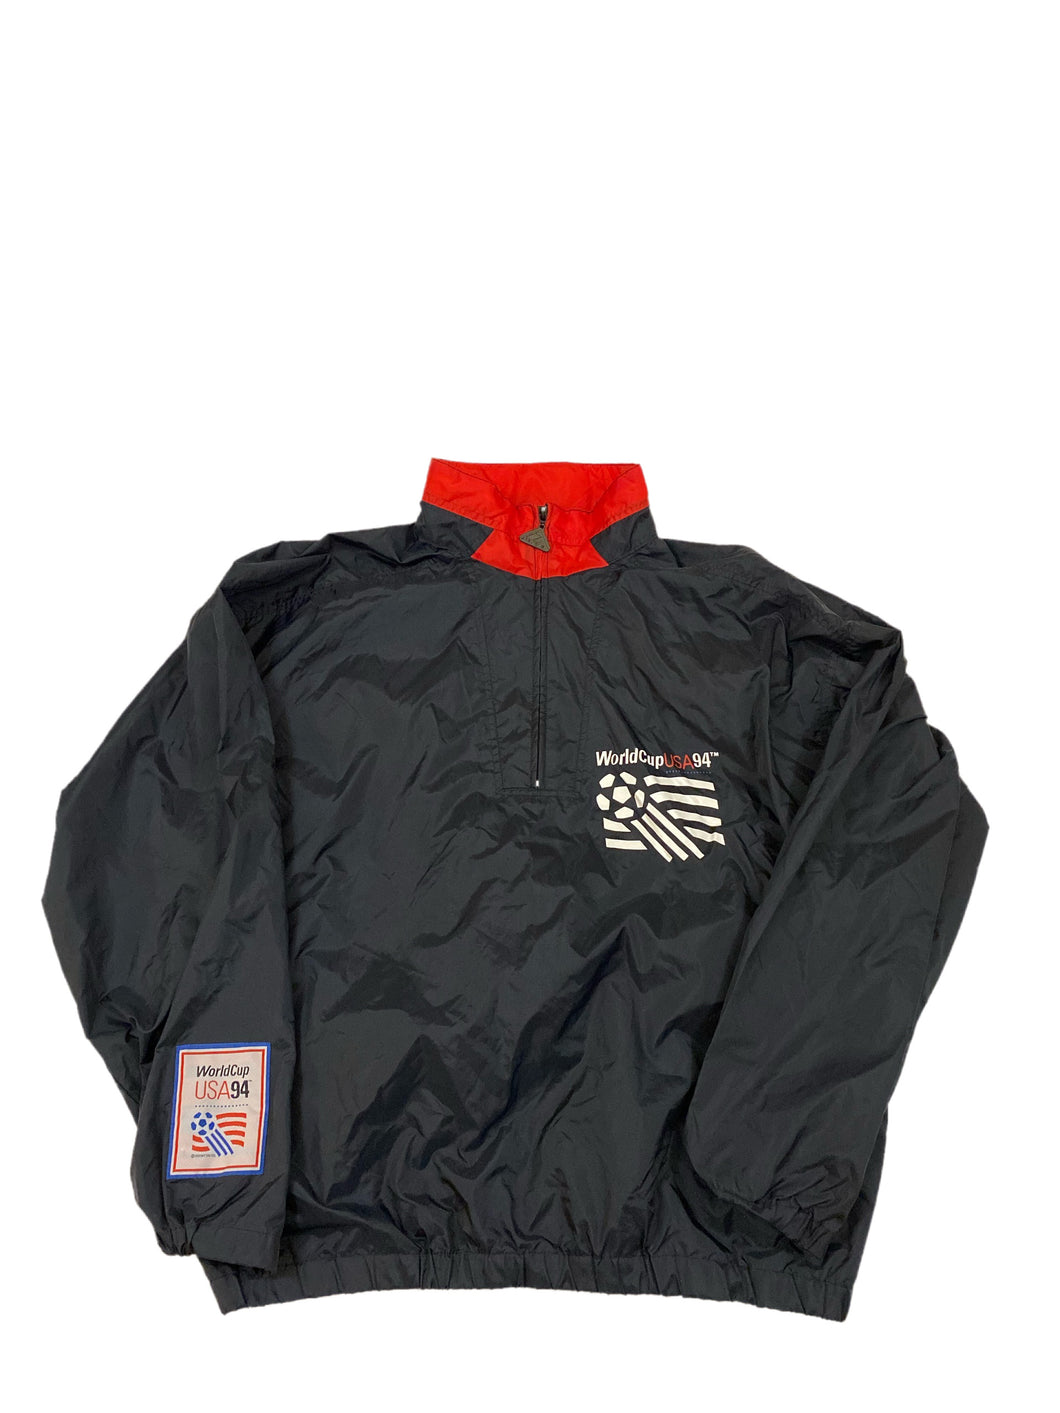 1994 World Cup Anorak